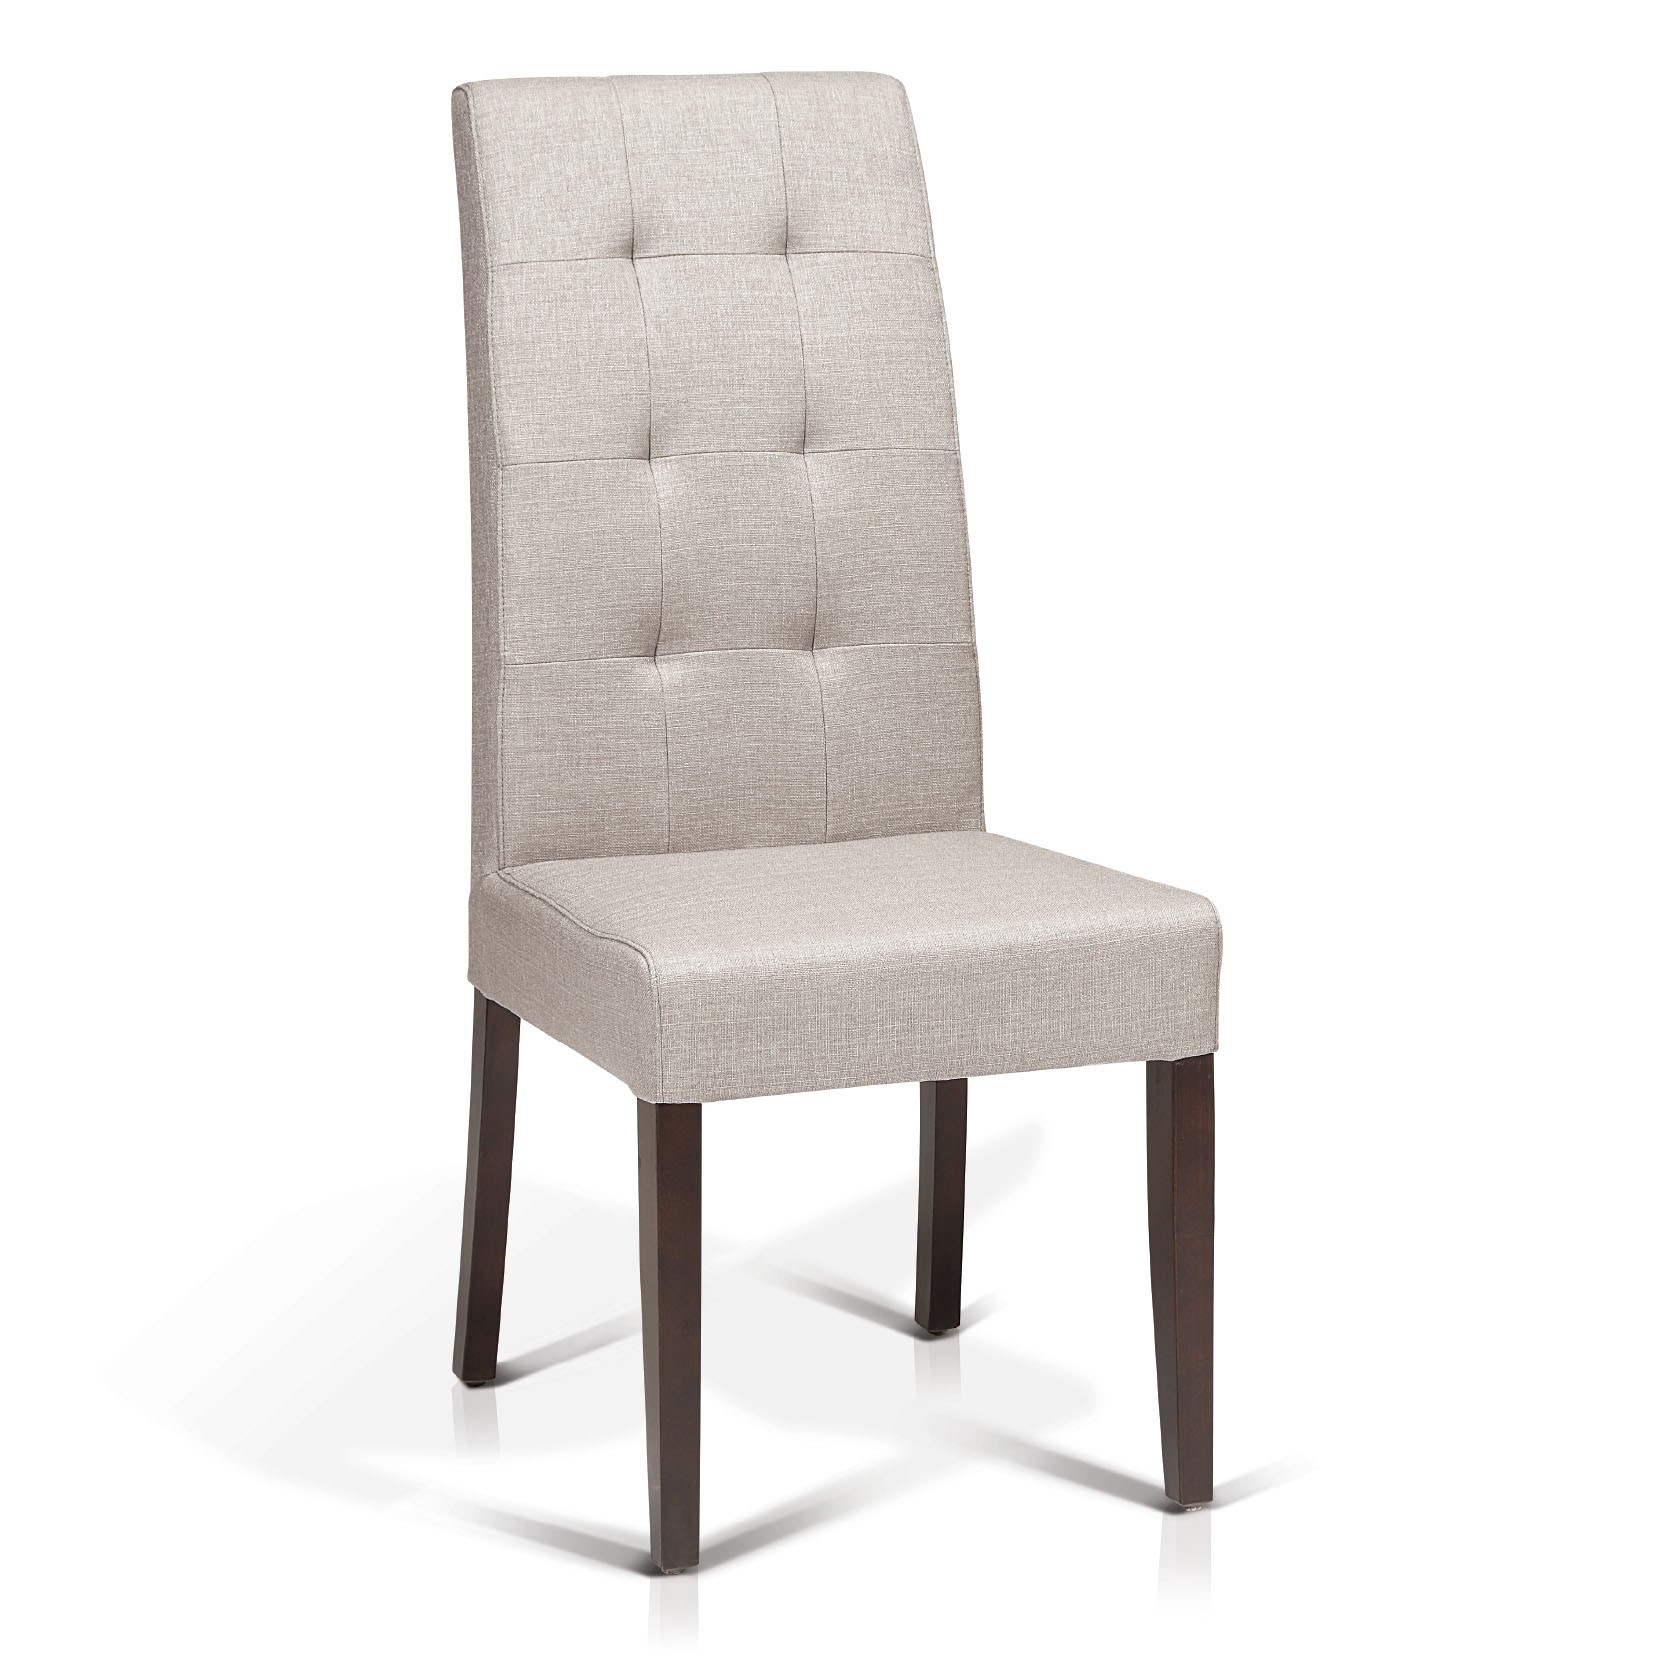 Choose The Right Dining Chair Style For Your Home Tarun